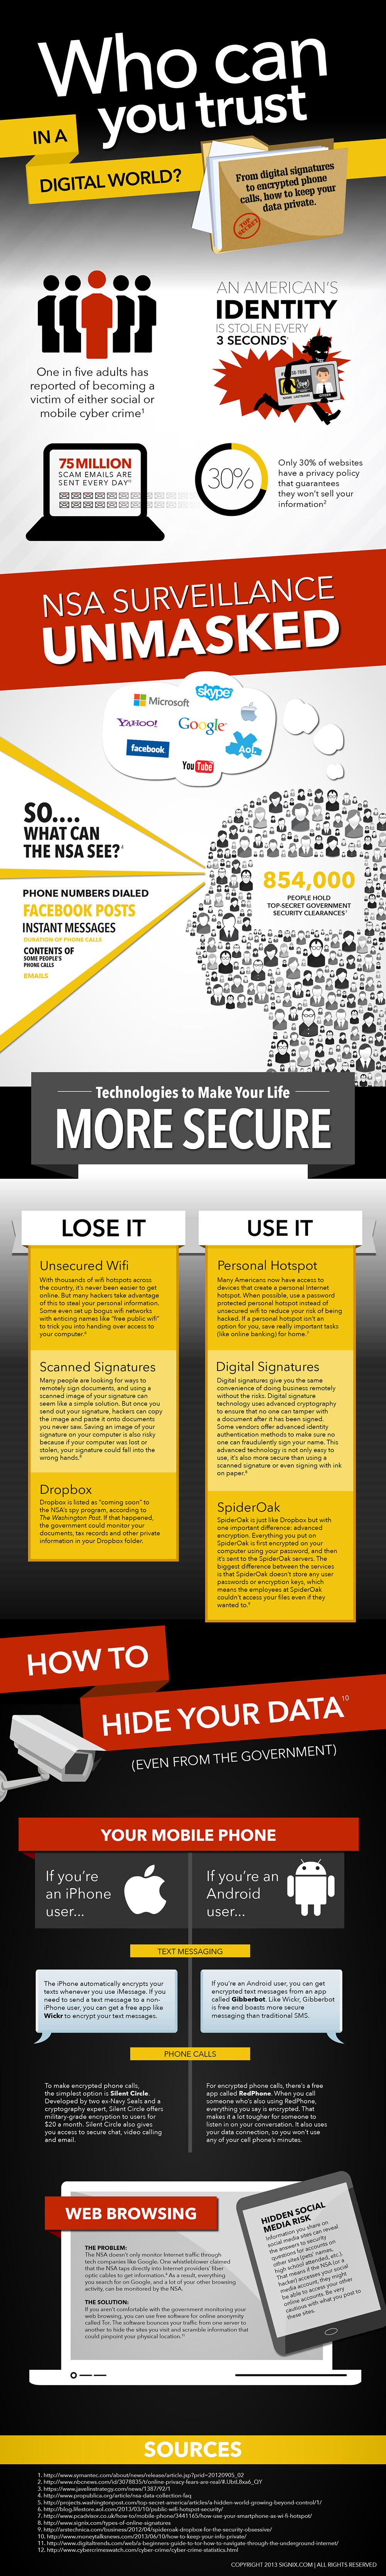 infographic: Who Can You Trust in a Digital World? From Digital Signatures to Encrypted Calls.